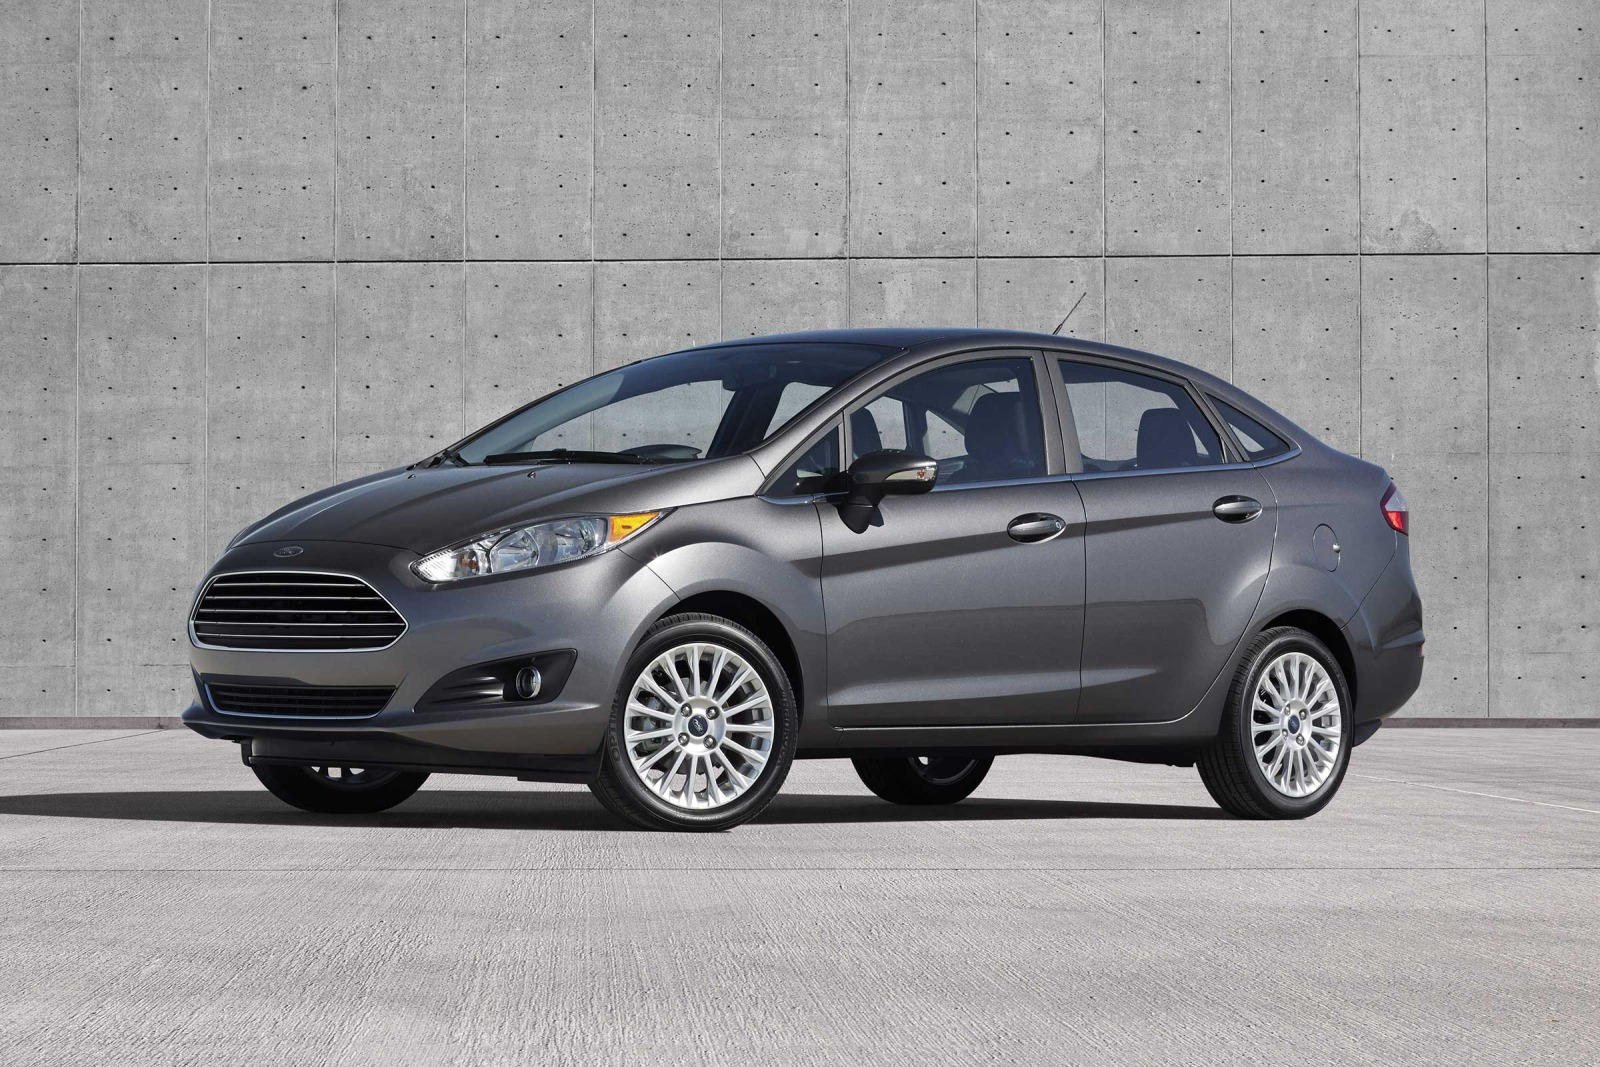 Ford Fiesta 2017 Specs 2017 Ford Fiesta Sedan Review Trims Specs And Price